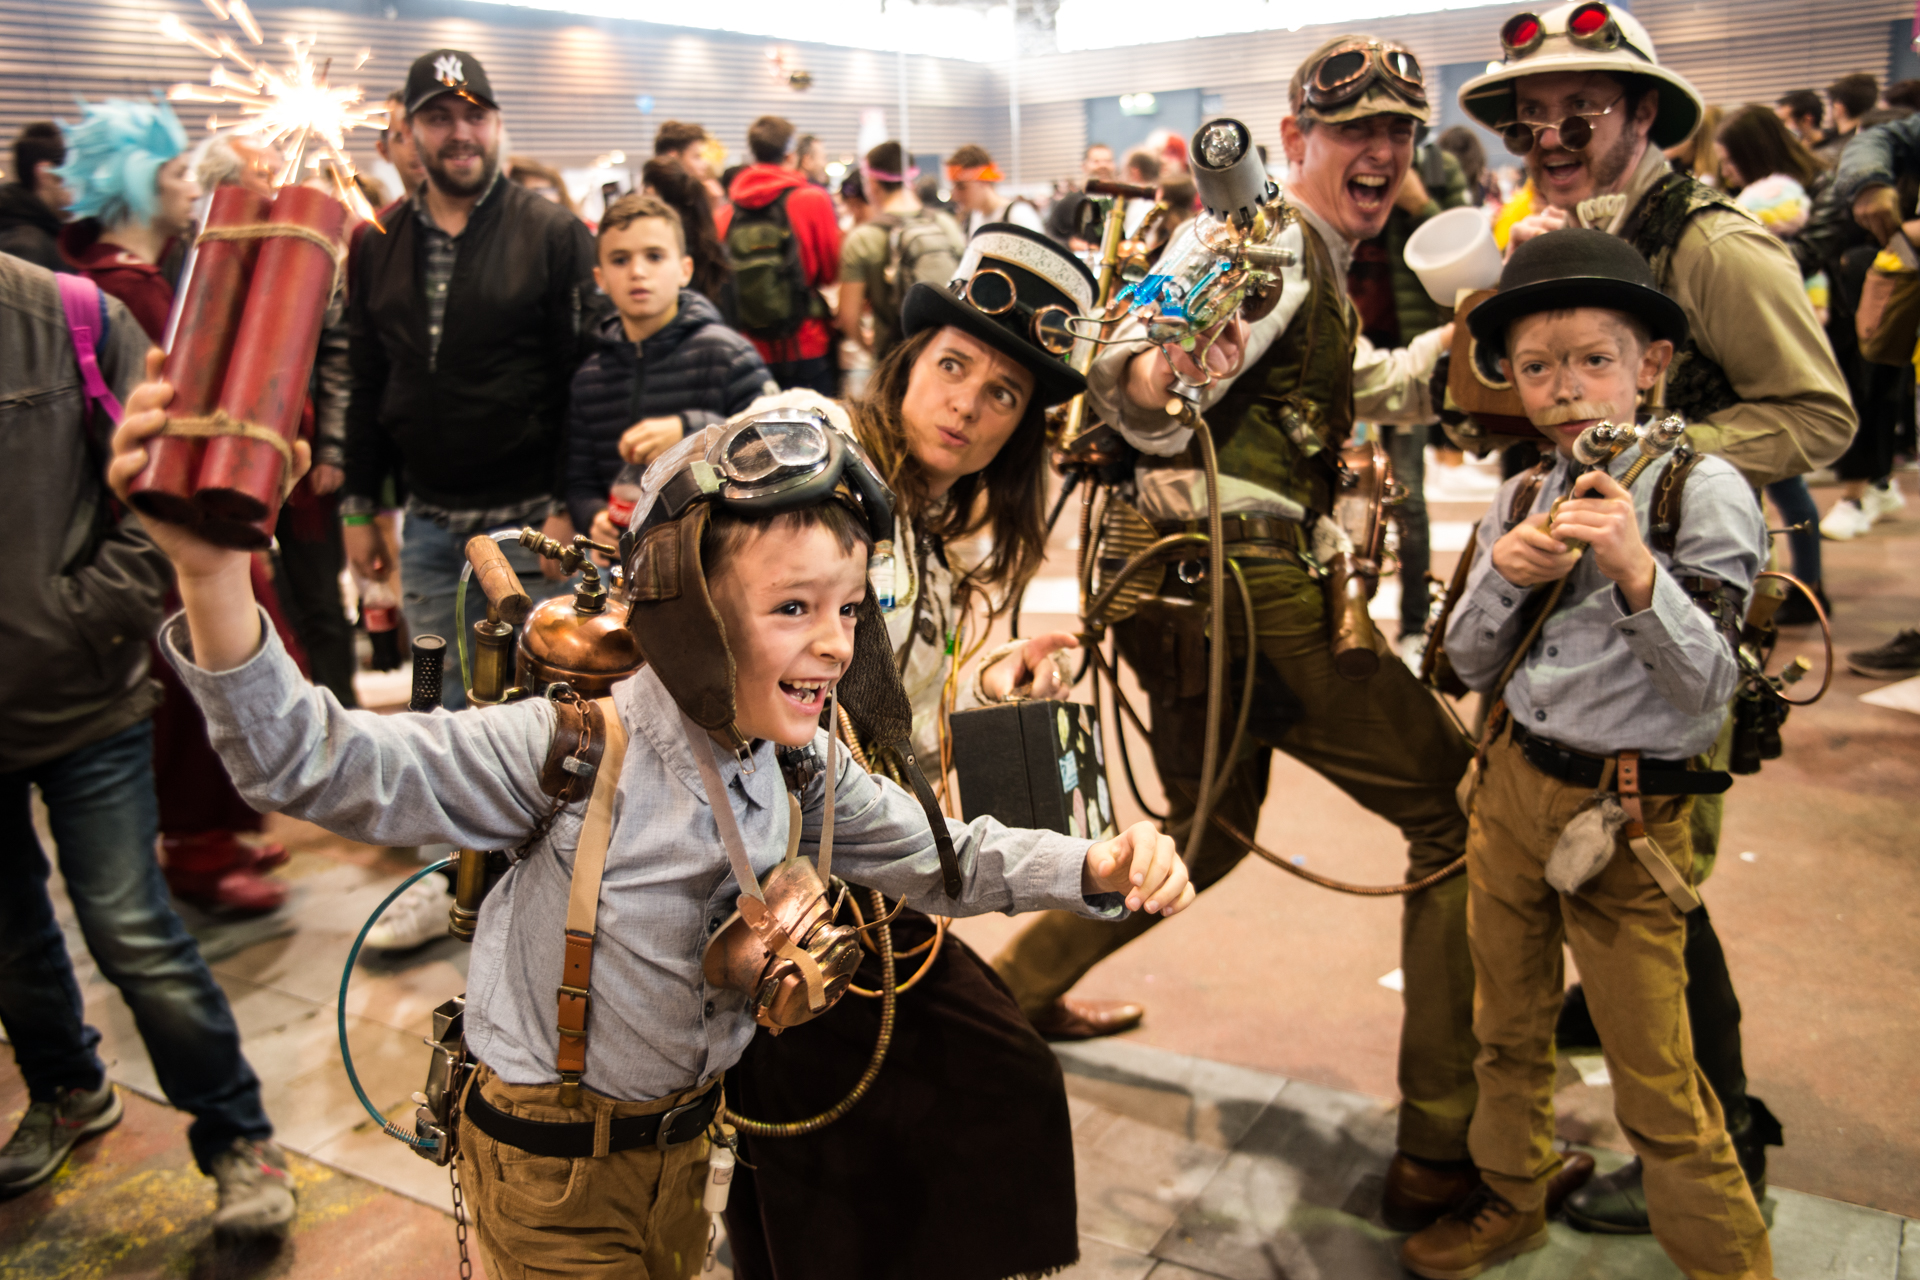 Famille steampunk - Japan Touch 2018